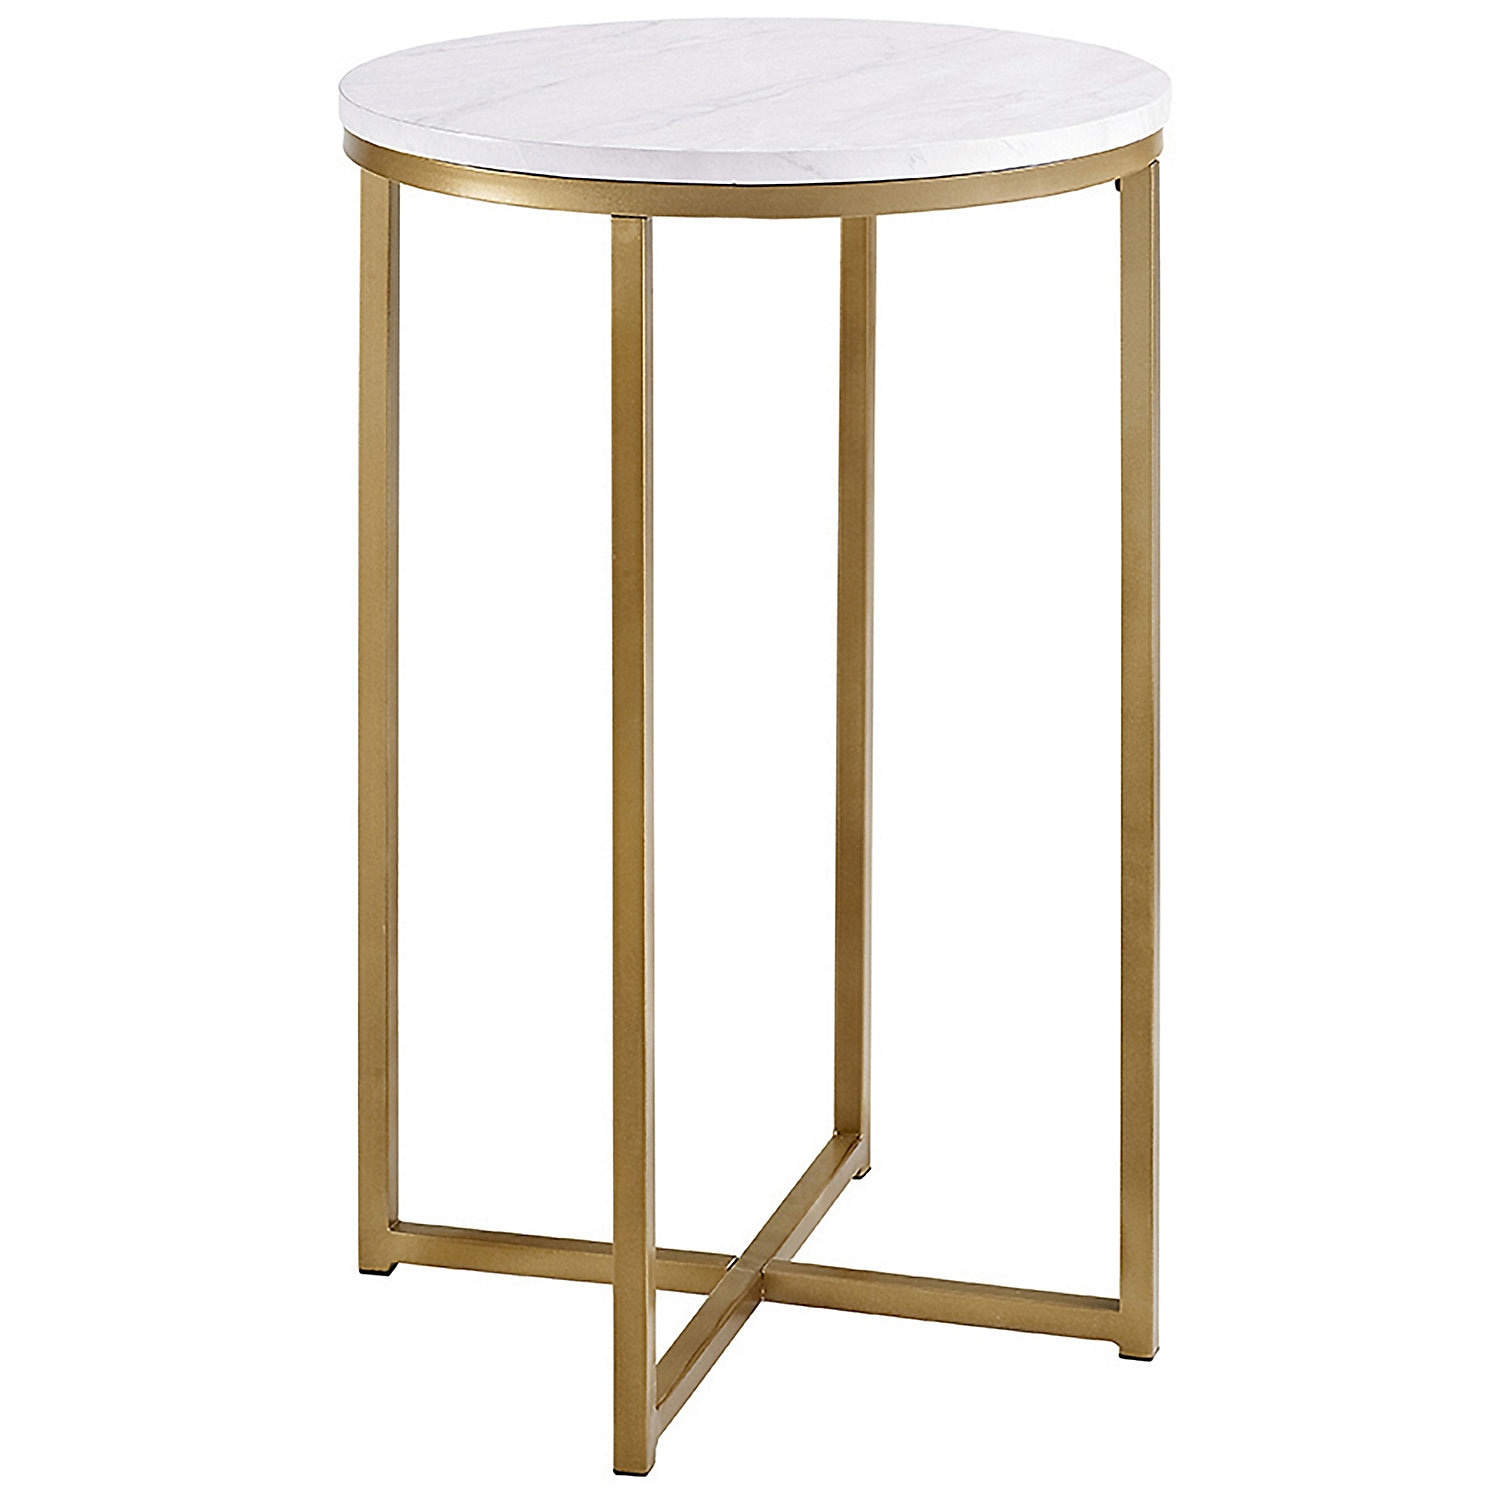 derby faux marble end table gold wood accent and occasional furniture crystal lamps small desk with hutch foyer collapsible narrow farm circular drop leaf sofa stools target chalk